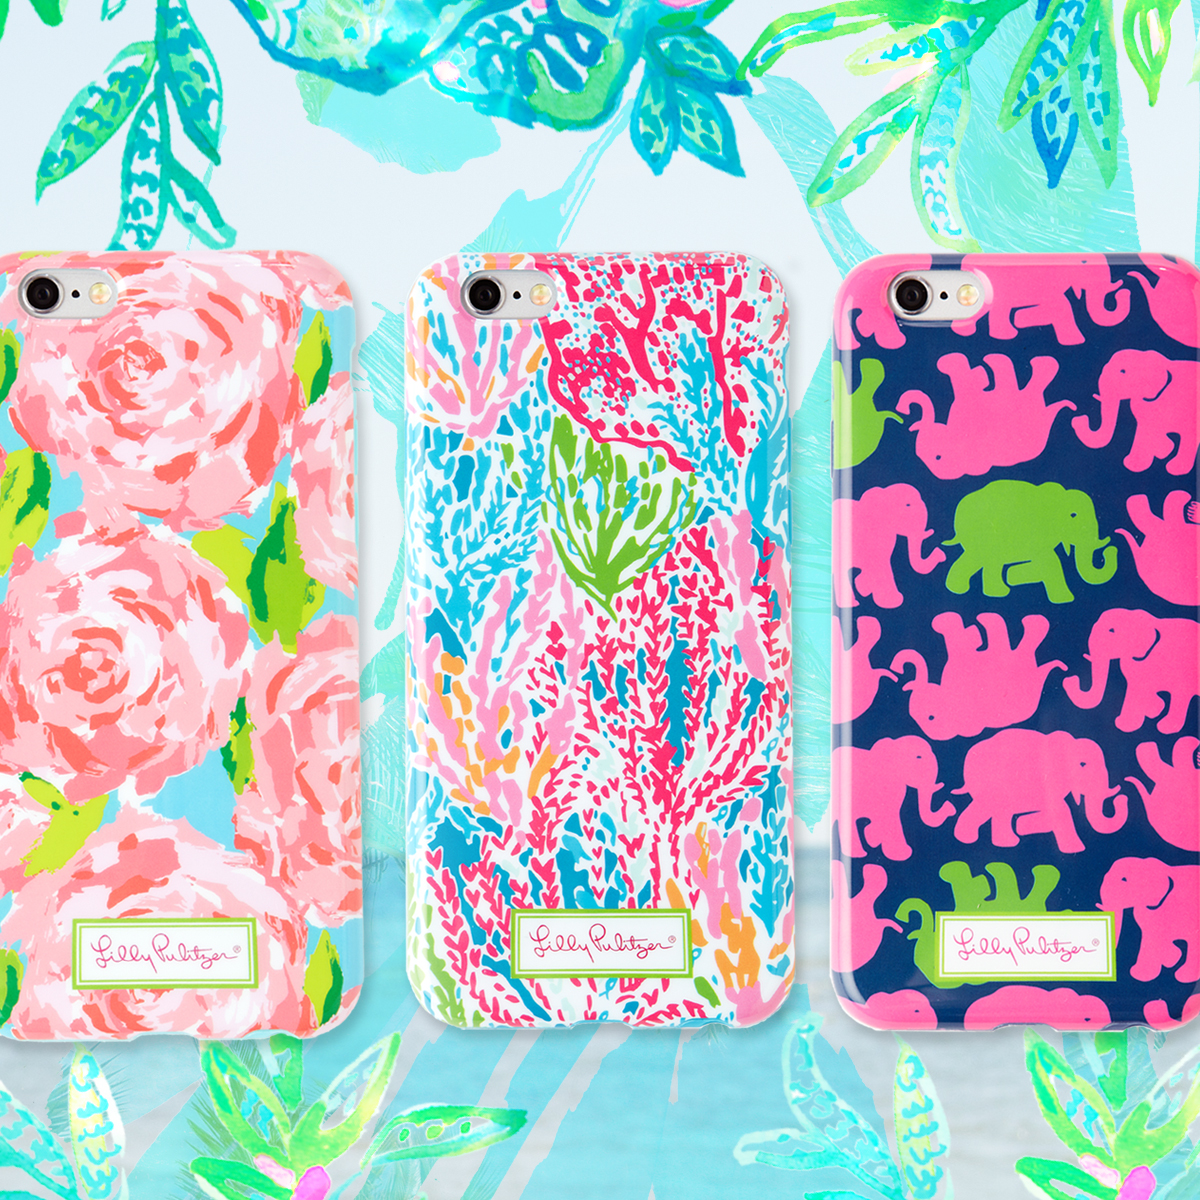 Lilly Pulitzer Phone Wallet | Lilly Pulitzer Id Holder | Lilly Pulitzer Phone Case